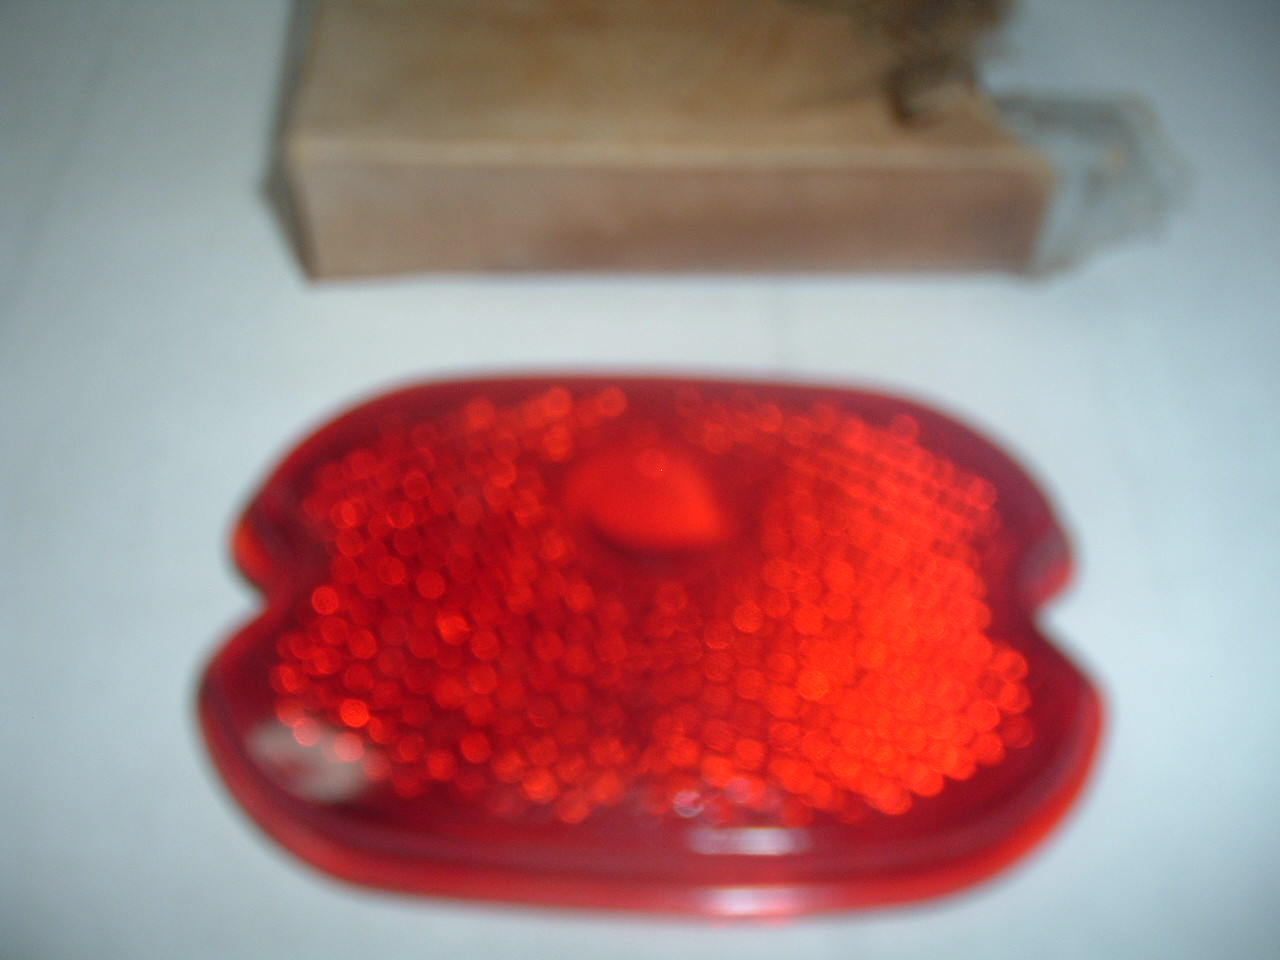 1947 48 49 50 51 52 53 54 55 56 57 chevrolet suburban truck taillight lens new glass 5936906 (z 5936906)